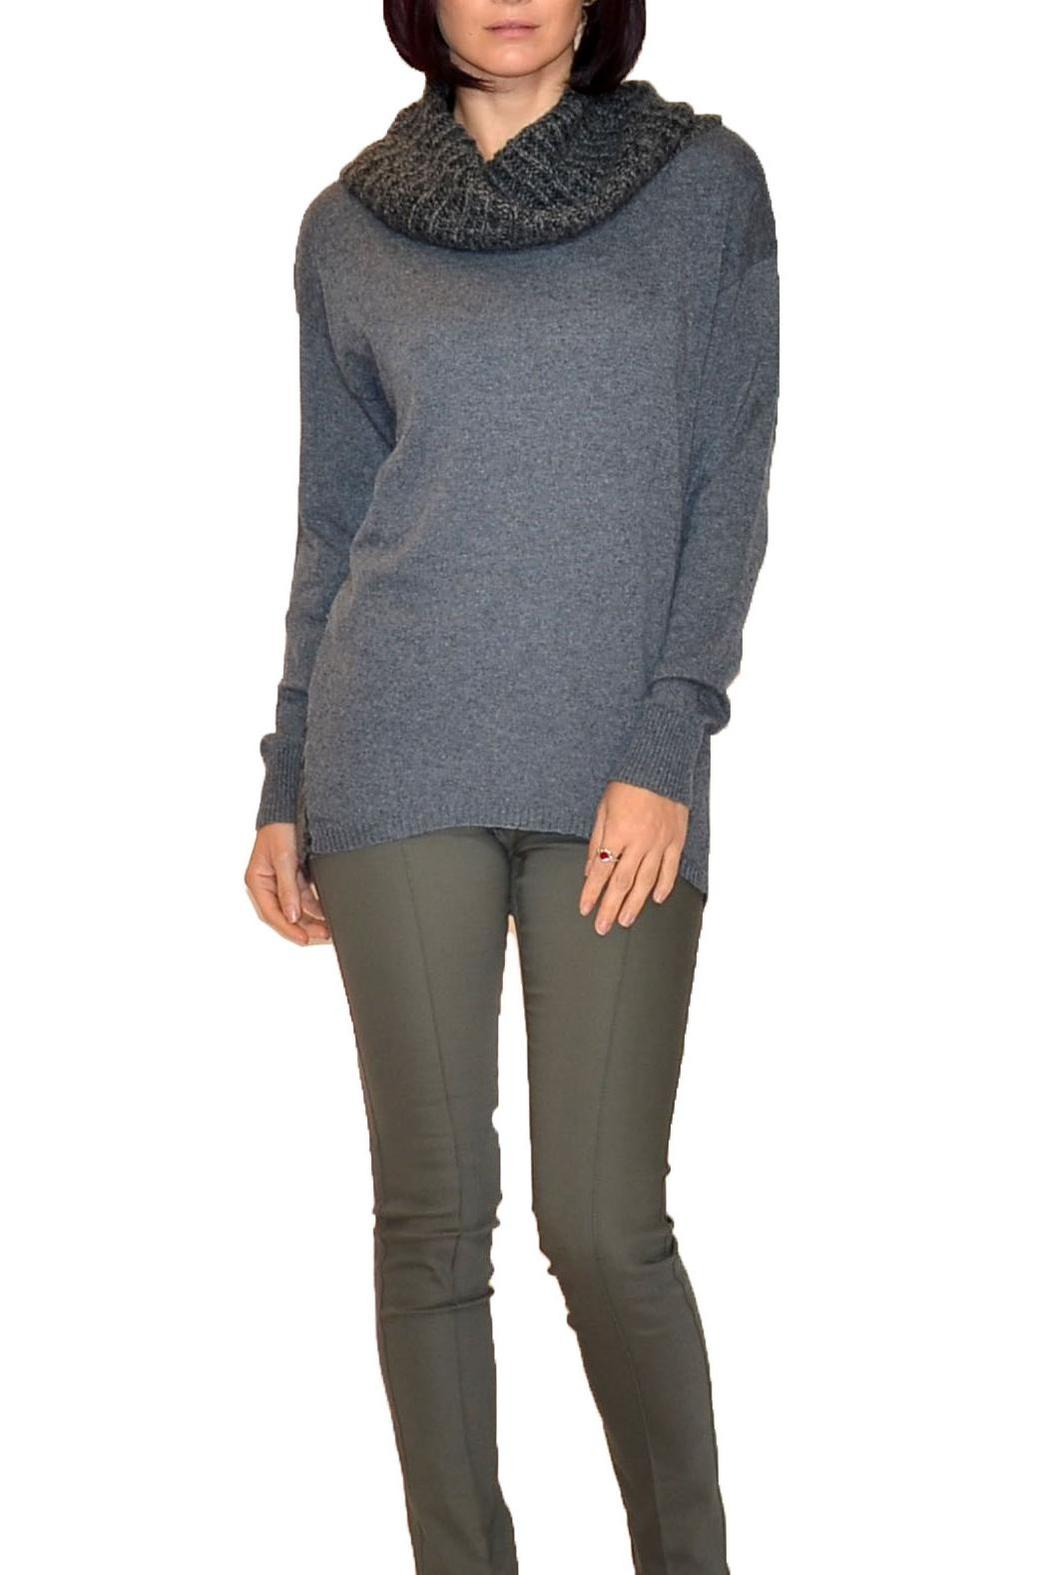 D&K Grey Cowl-Neck Sweater from Santa Monica by Estell Boutique ...